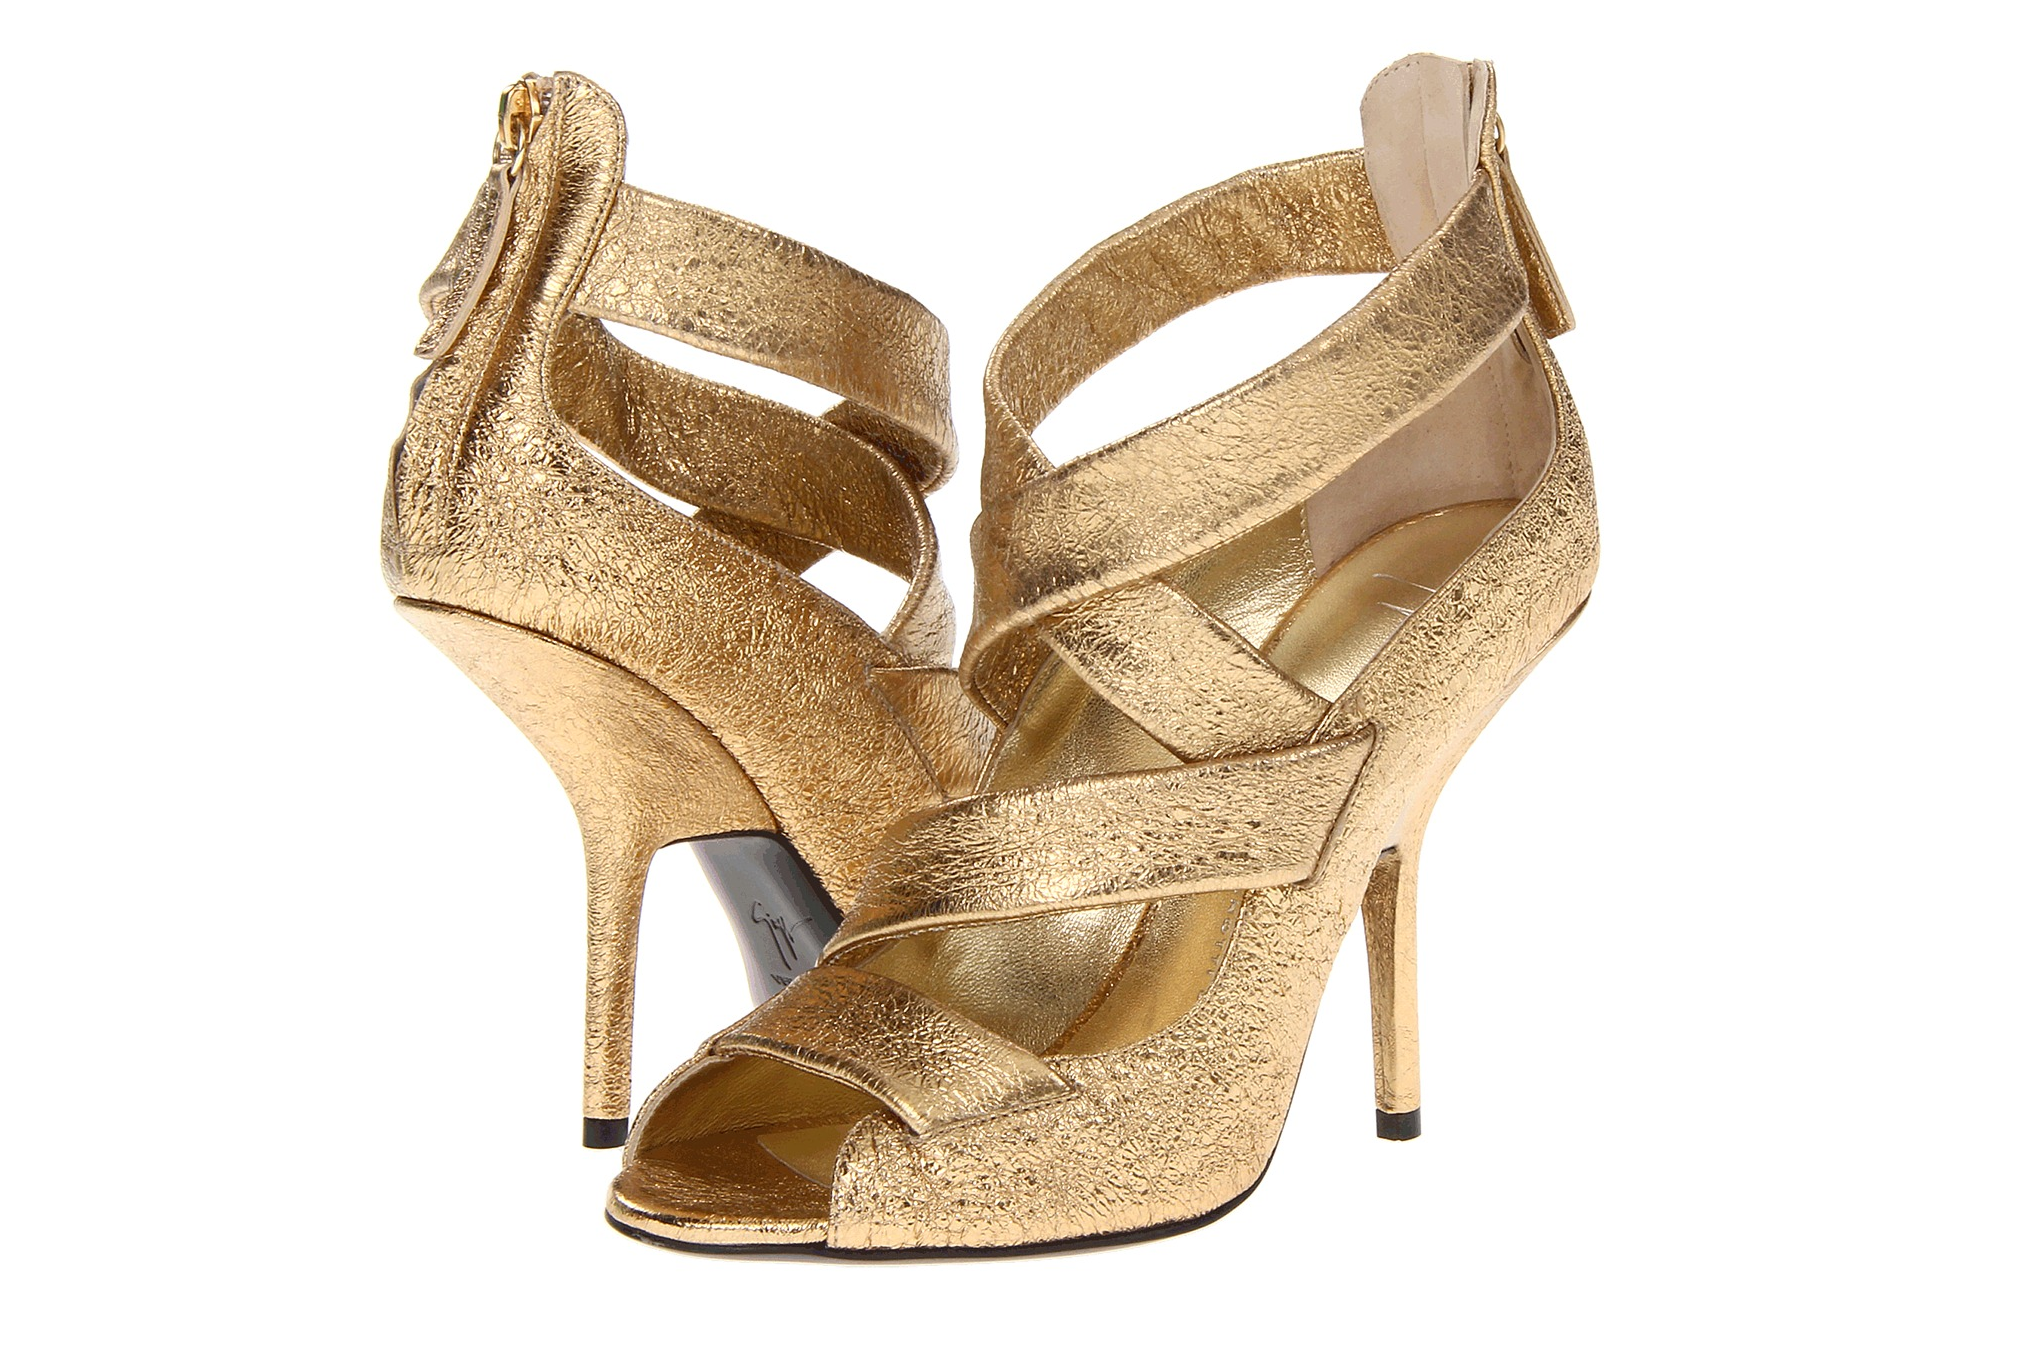 Glamorous gold wedding shoes Giuseppe Zanotti | OneWed.com